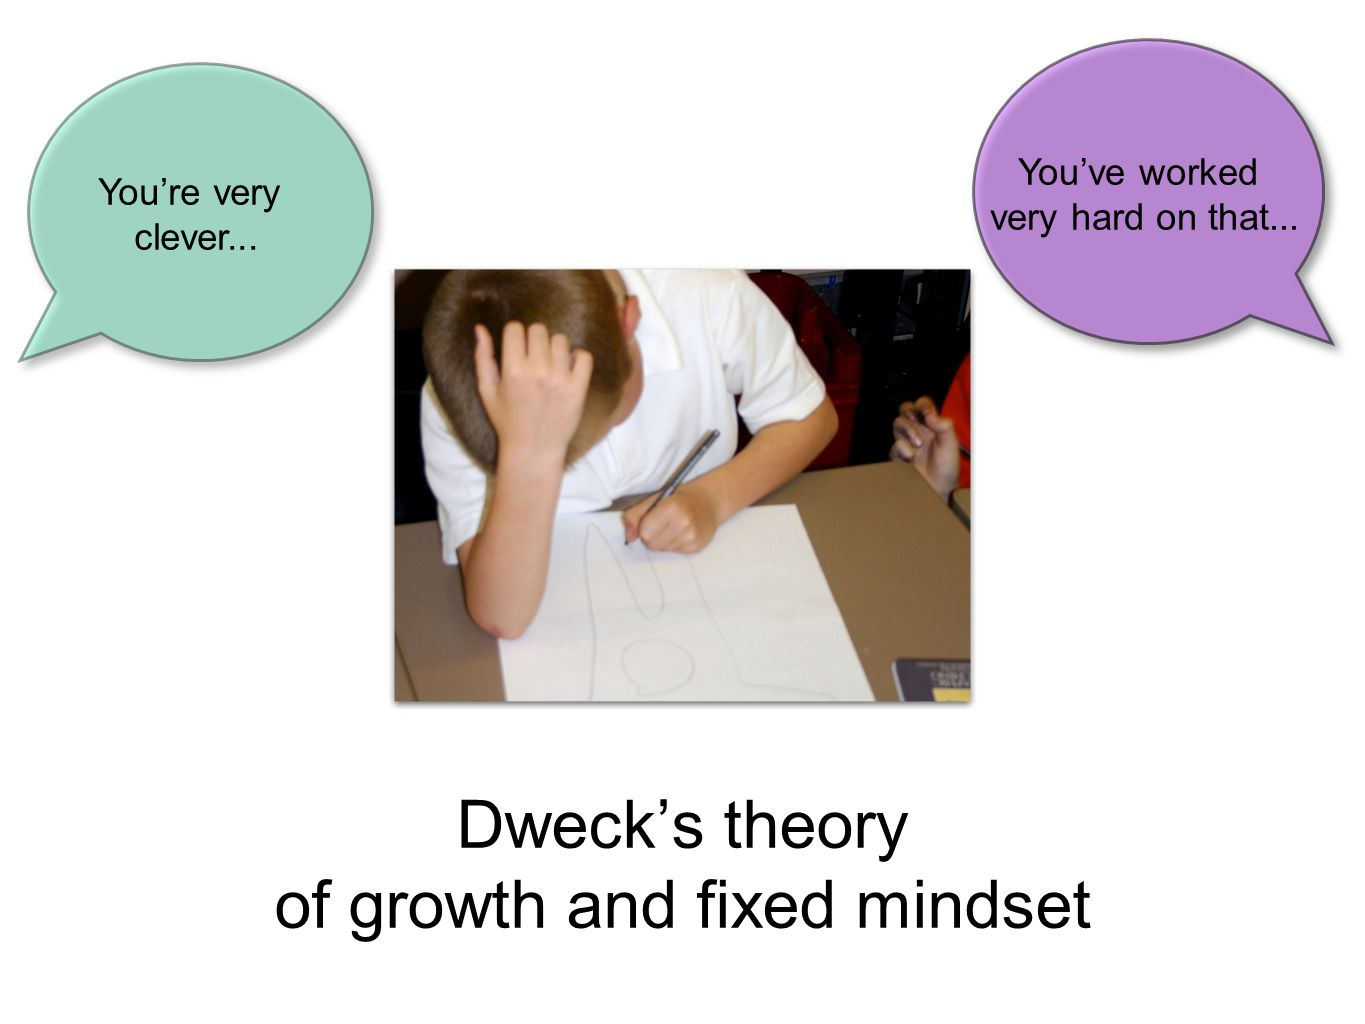 Dweck's theory of growth and fixed mindset